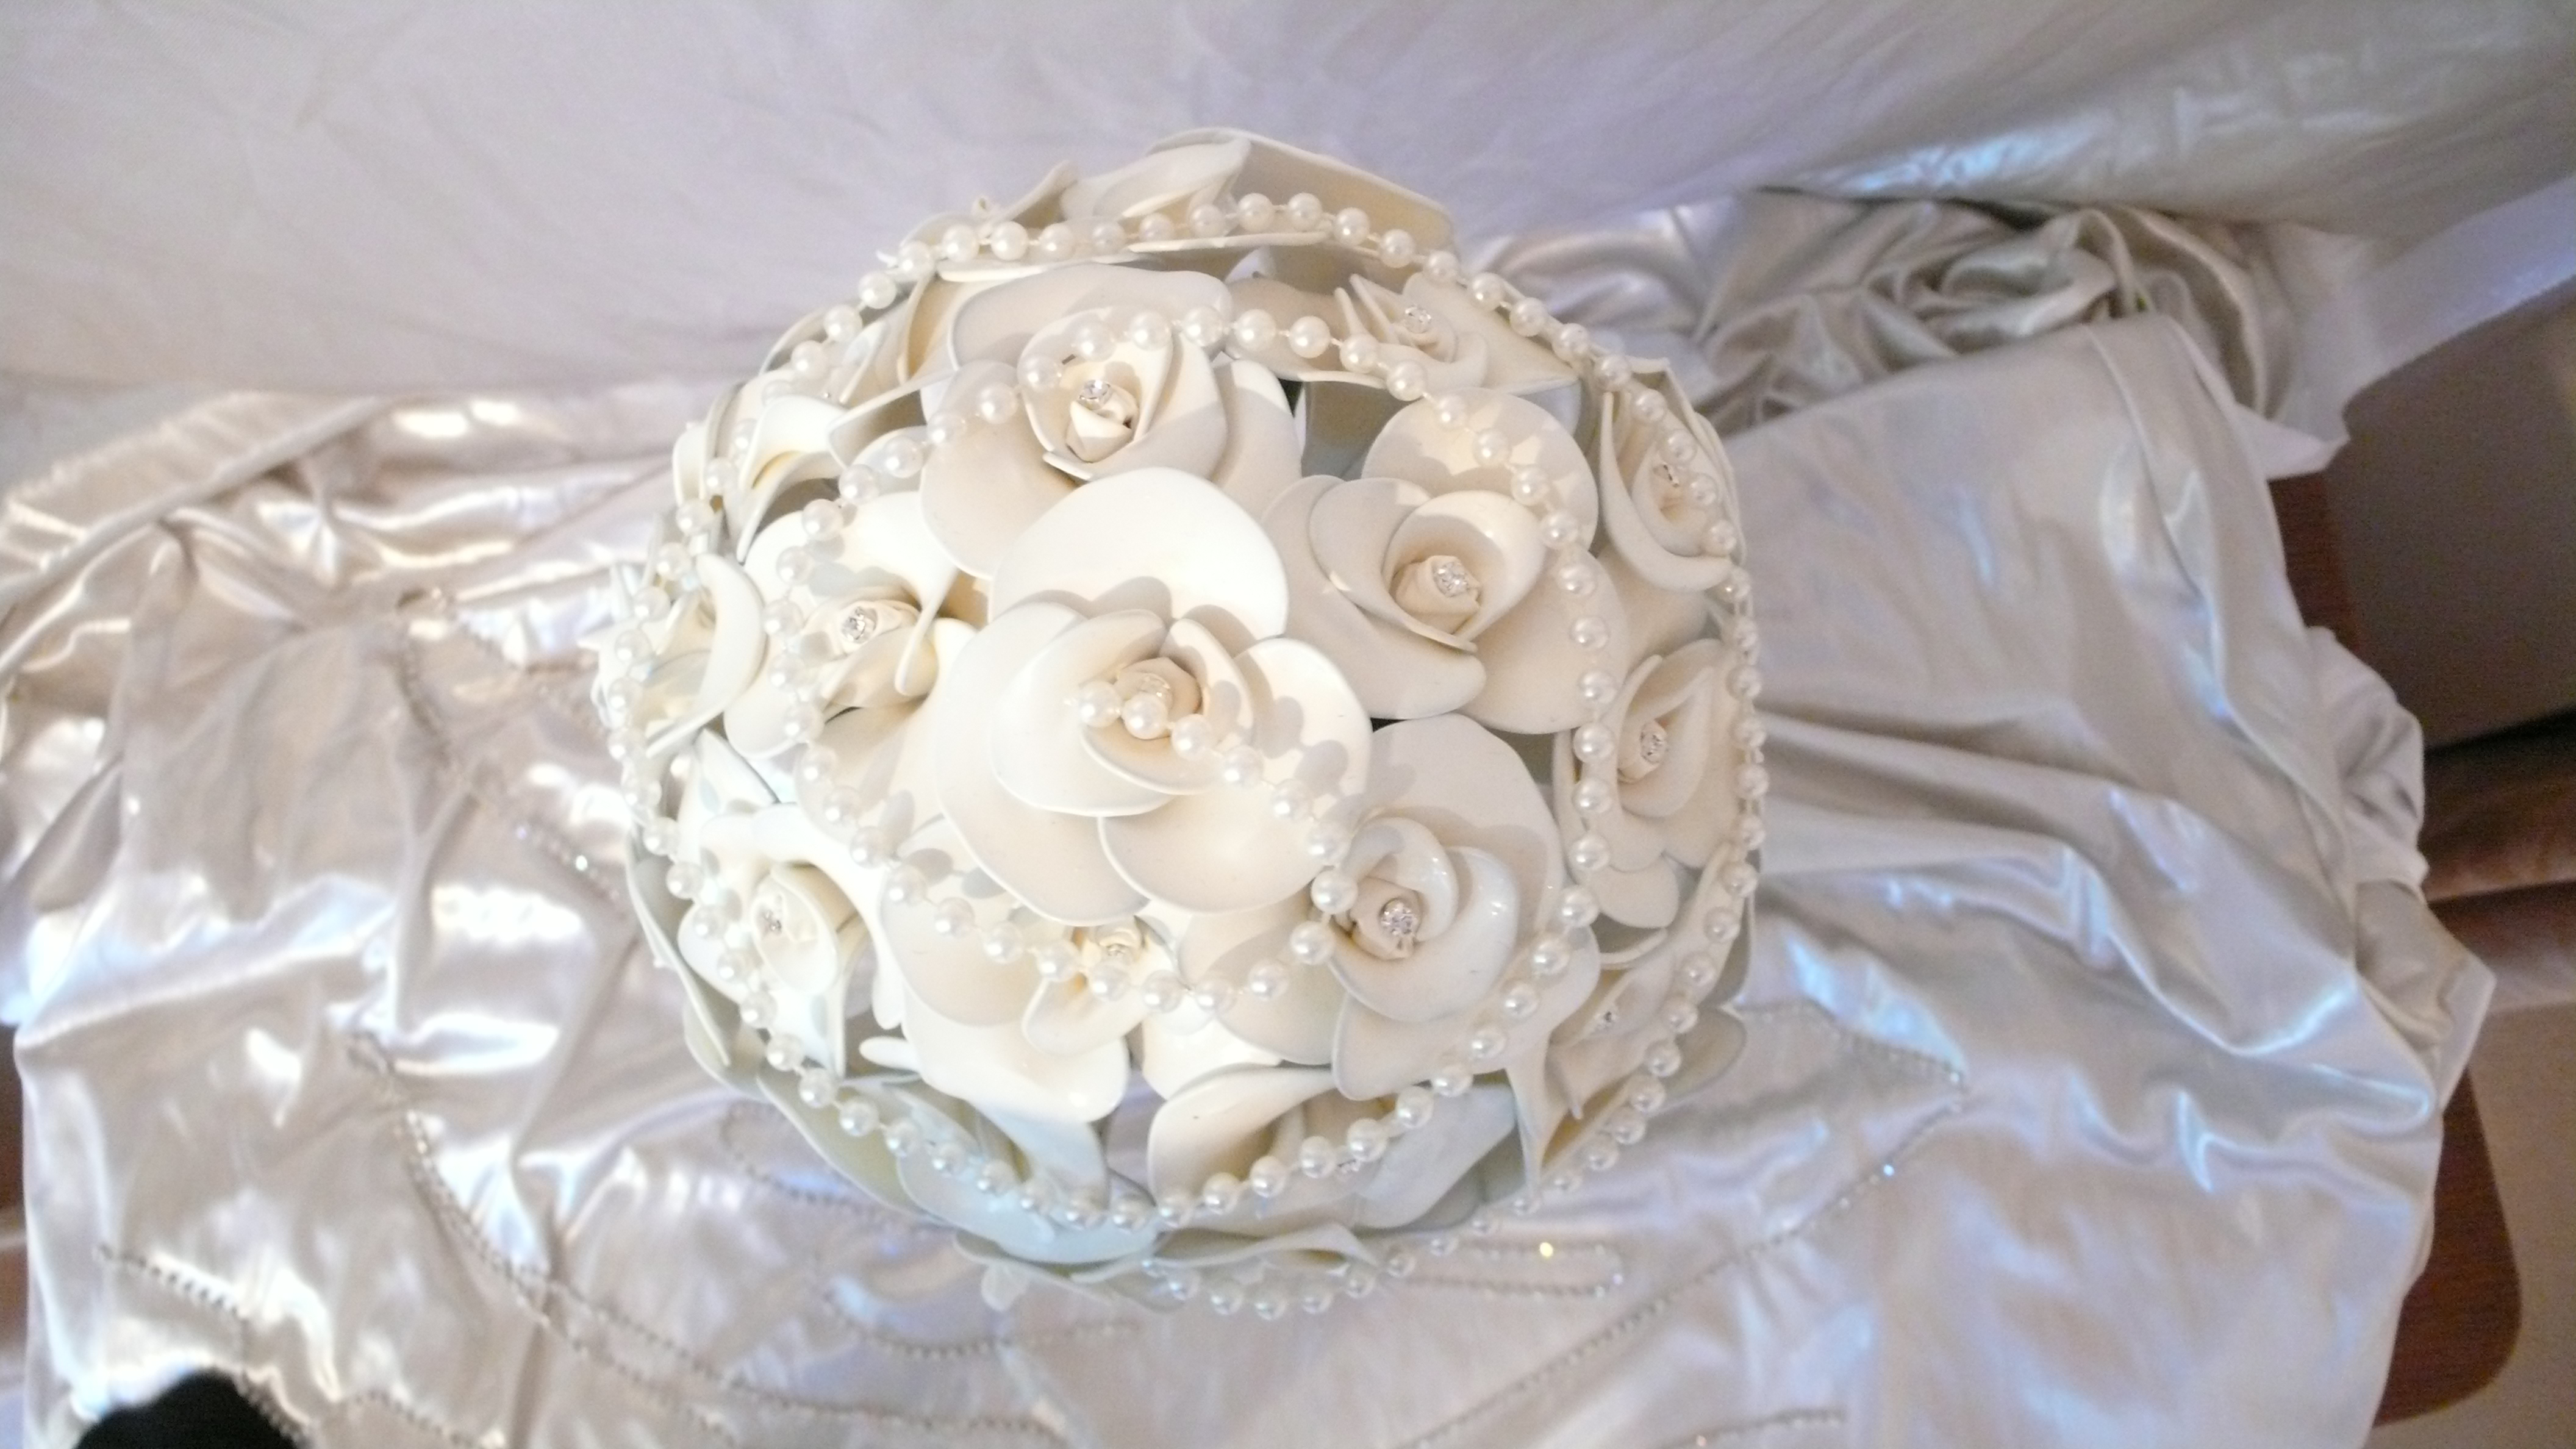 A touch more elegance added, with pearls to a fantasy bouquet